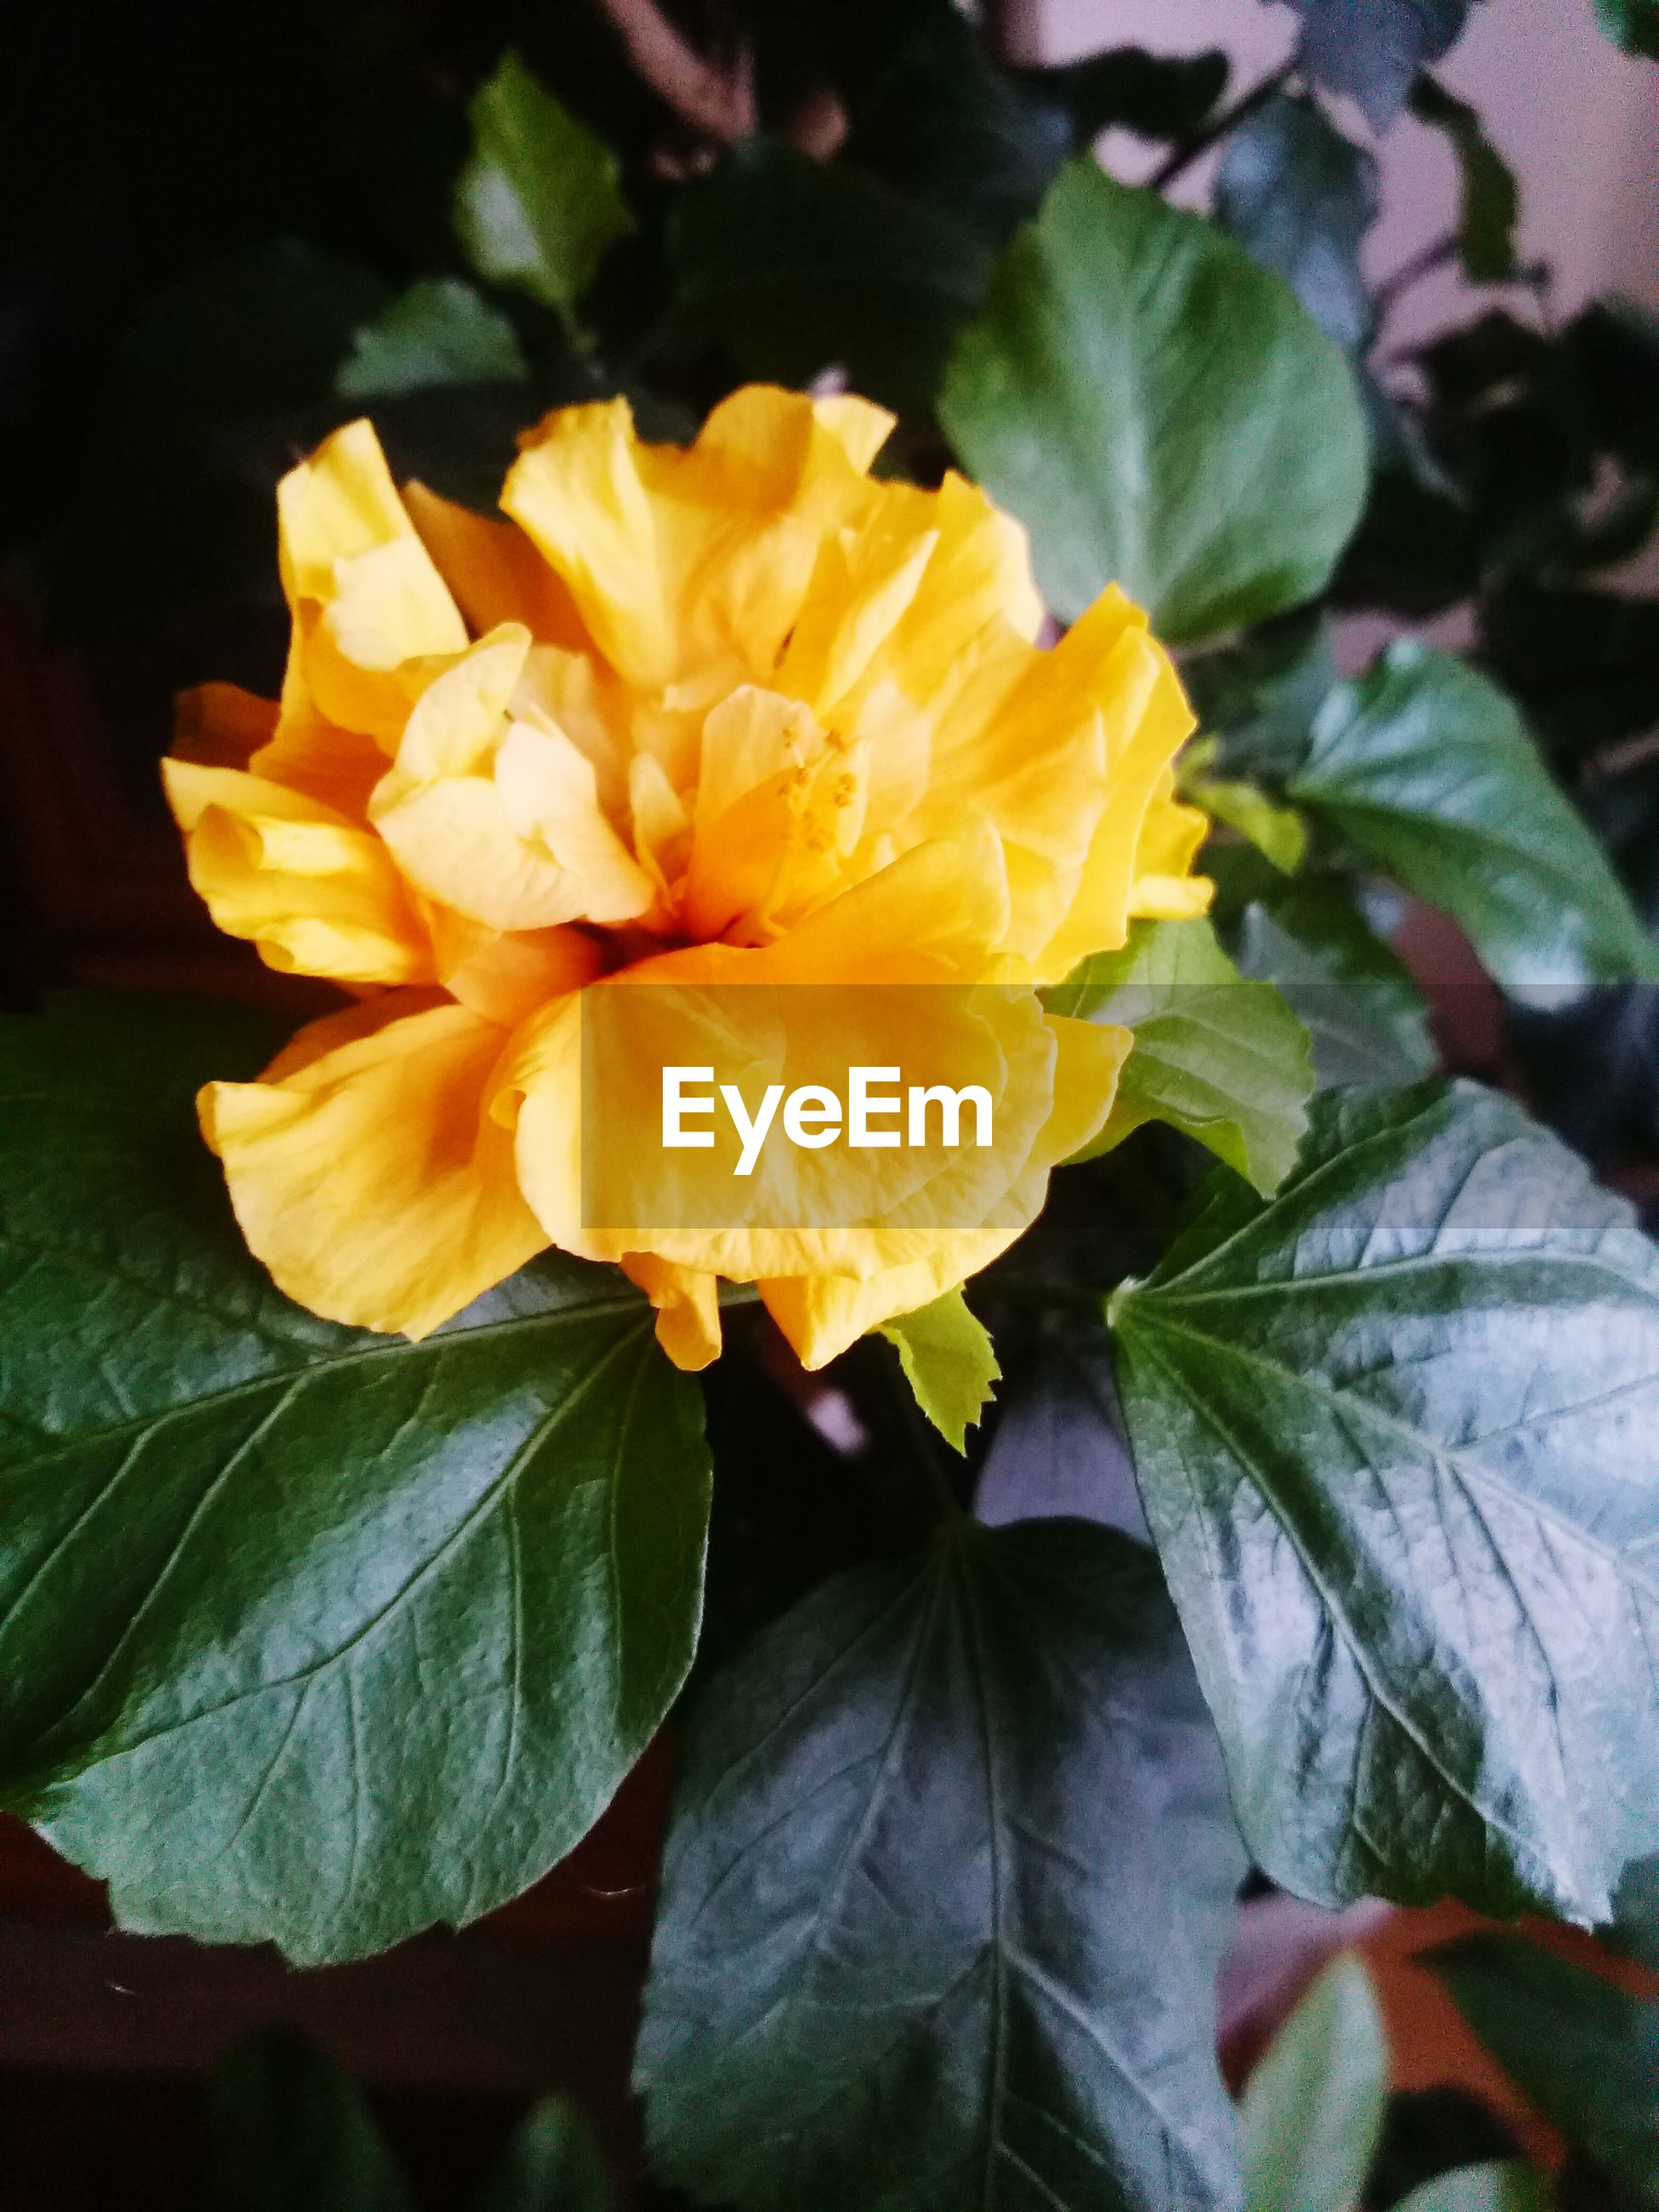 flower, petal, freshness, flower head, yellow, fragility, growth, beauty in nature, close-up, leaf, nature, plant, blooming, single flower, high angle view, in bloom, no people, blossom, orange color, pollen